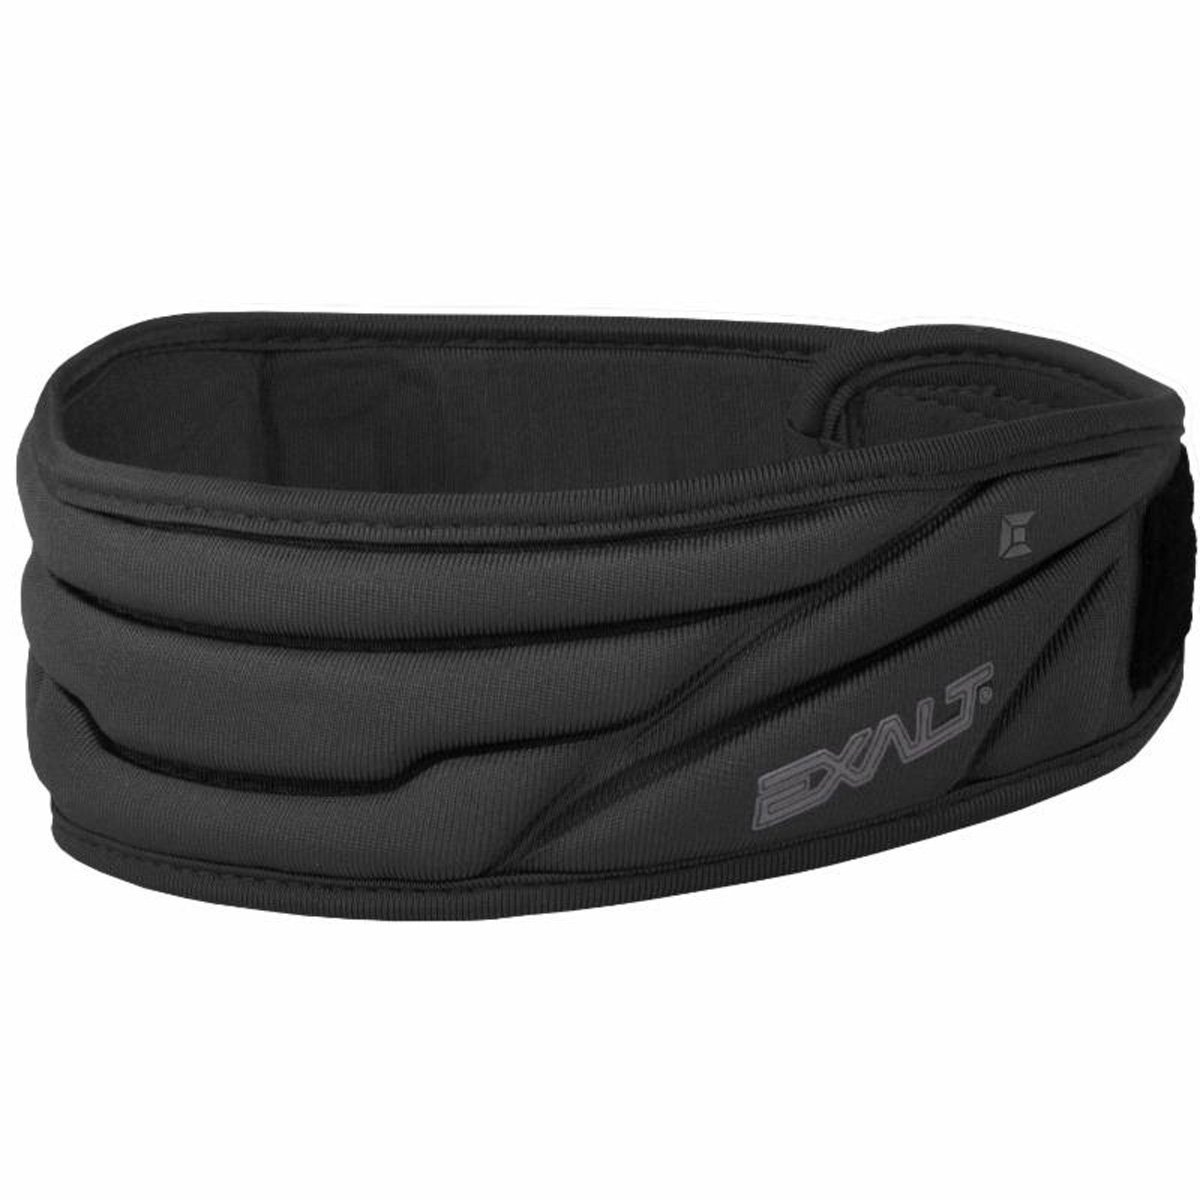 Exalt Paintball Neck Protector - Black by Exalt